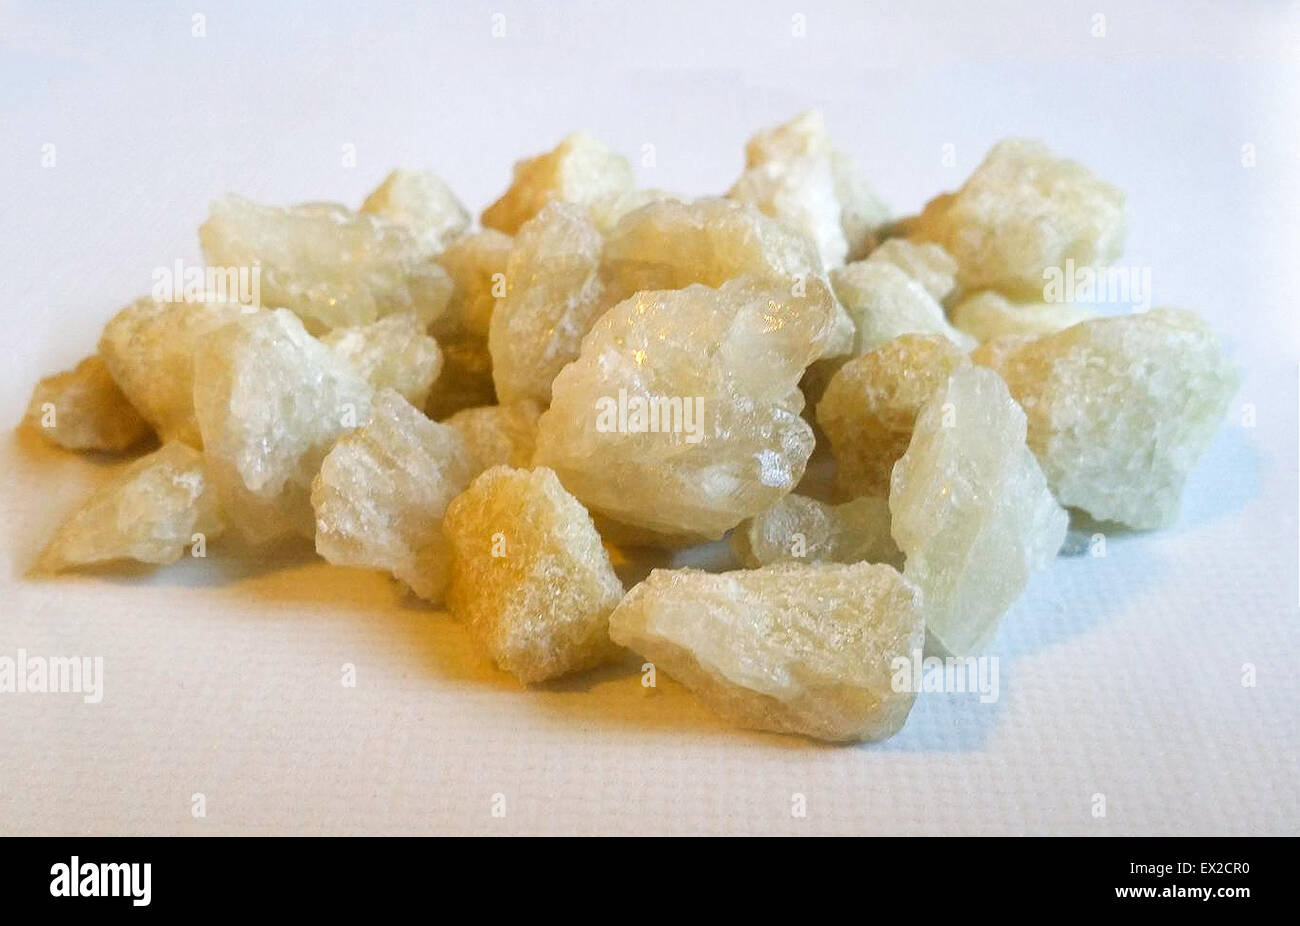 newly synthesized mdma ecstasy in crystal form usually